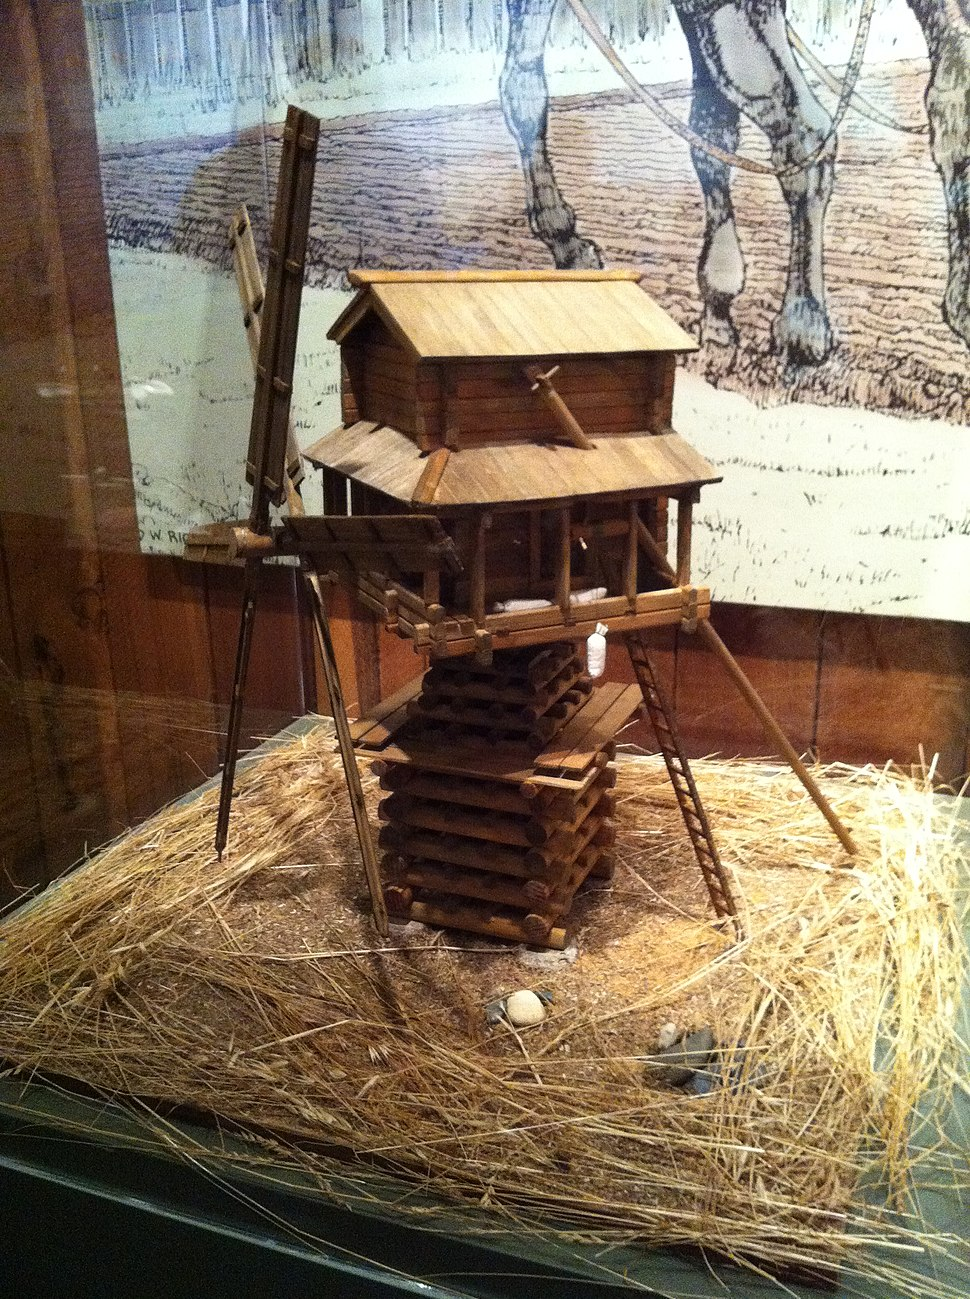 Replica of Windmill